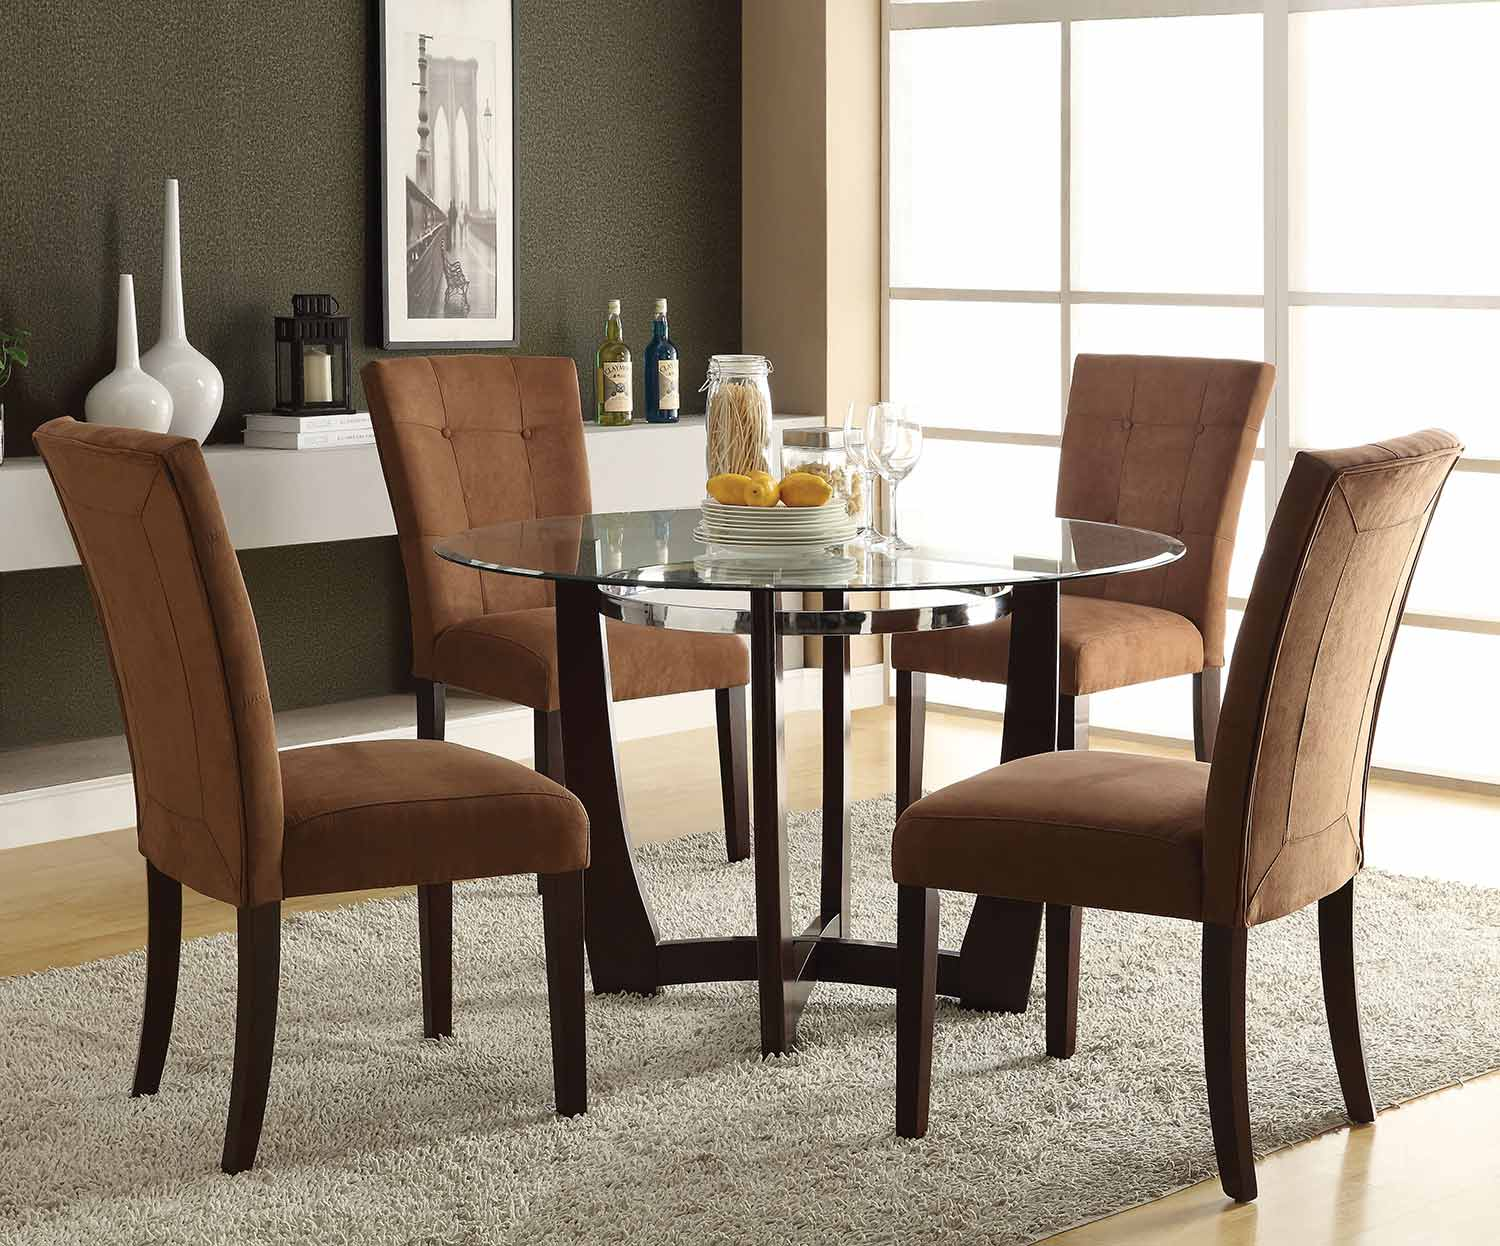 Acme Baldwin Dining Set - Chocolate/Walnut